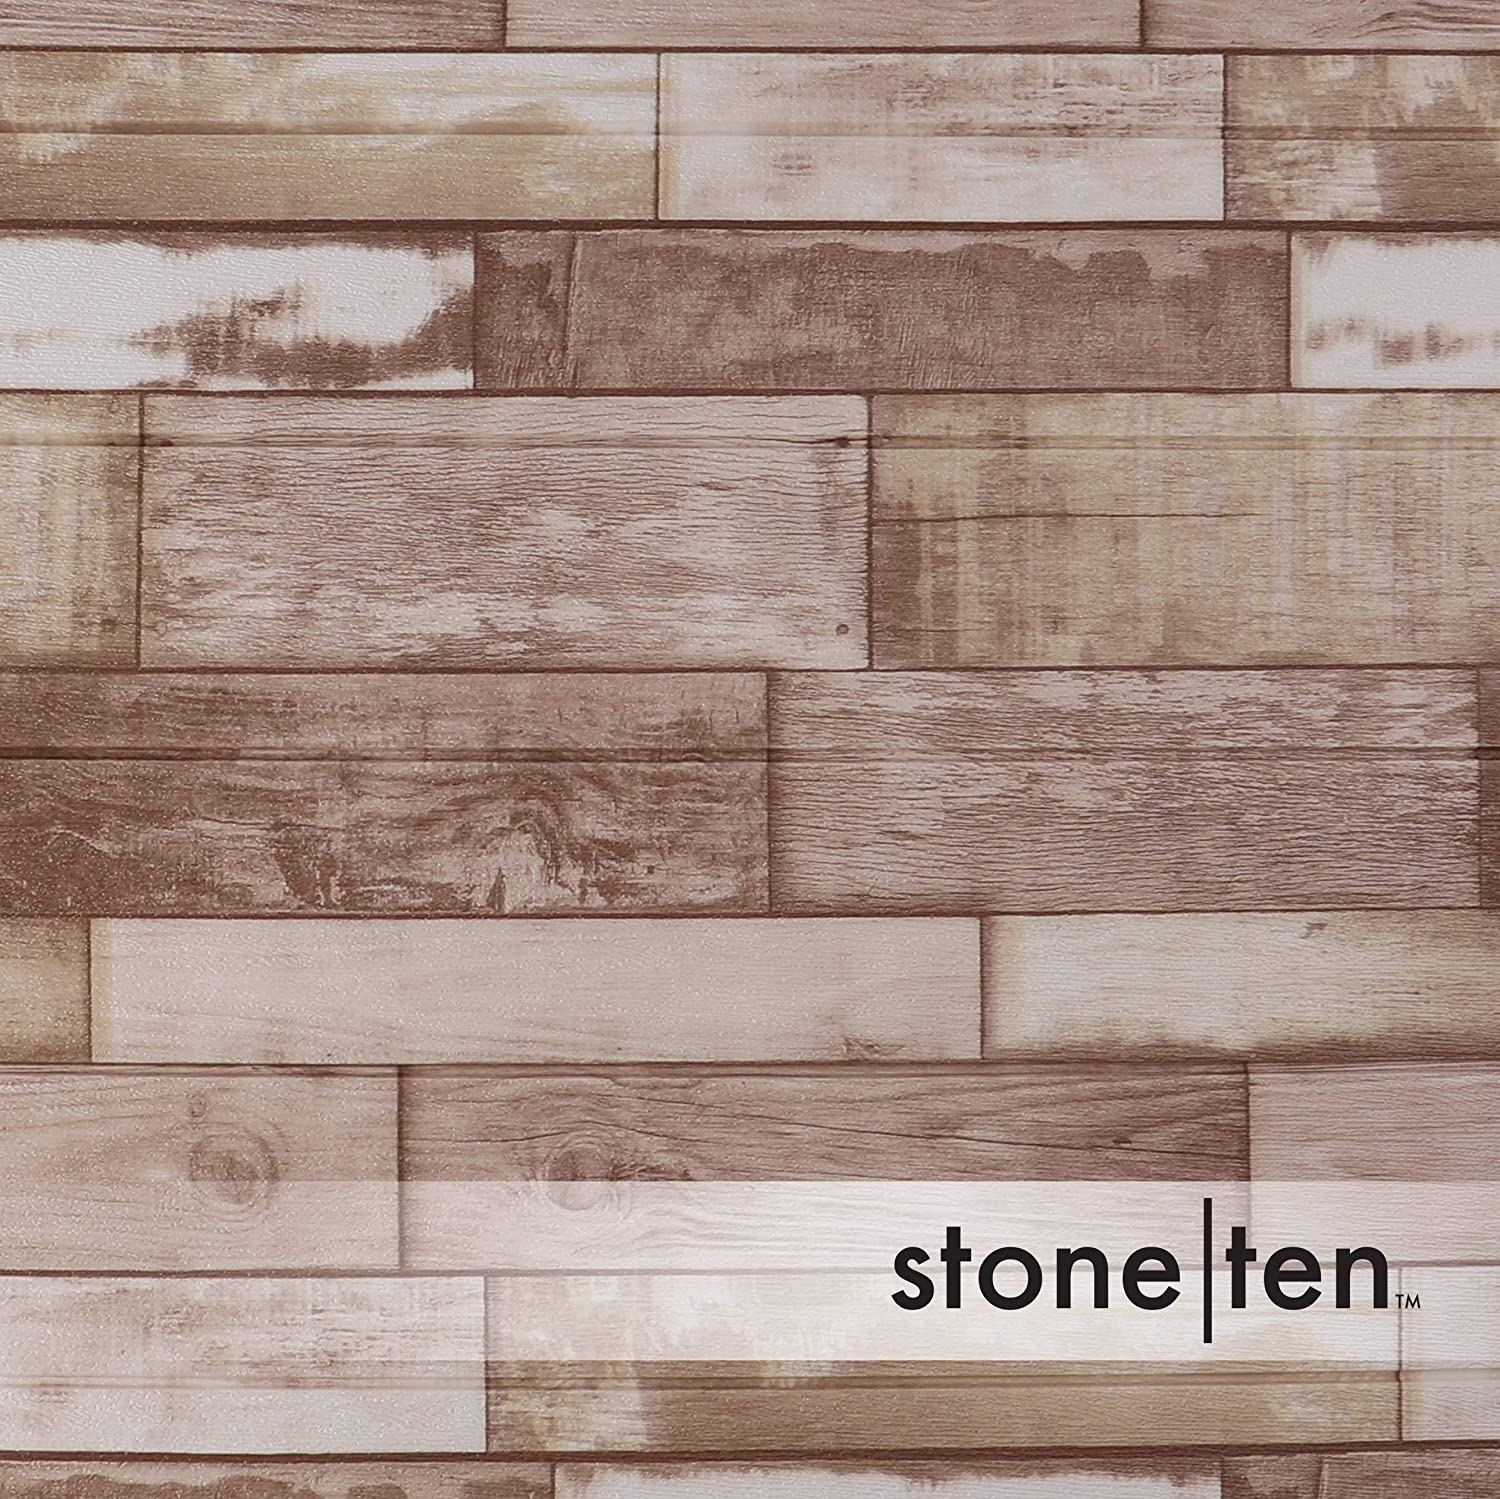 3D Wall Panels for Fake Wood Wall Faux Wood Wall Panels Rustic Charm 20 Pack 3D Wood Wallpaper - Self Adhesive Wood Look Wall Panels Peel and Stick Foam Wood Paneling